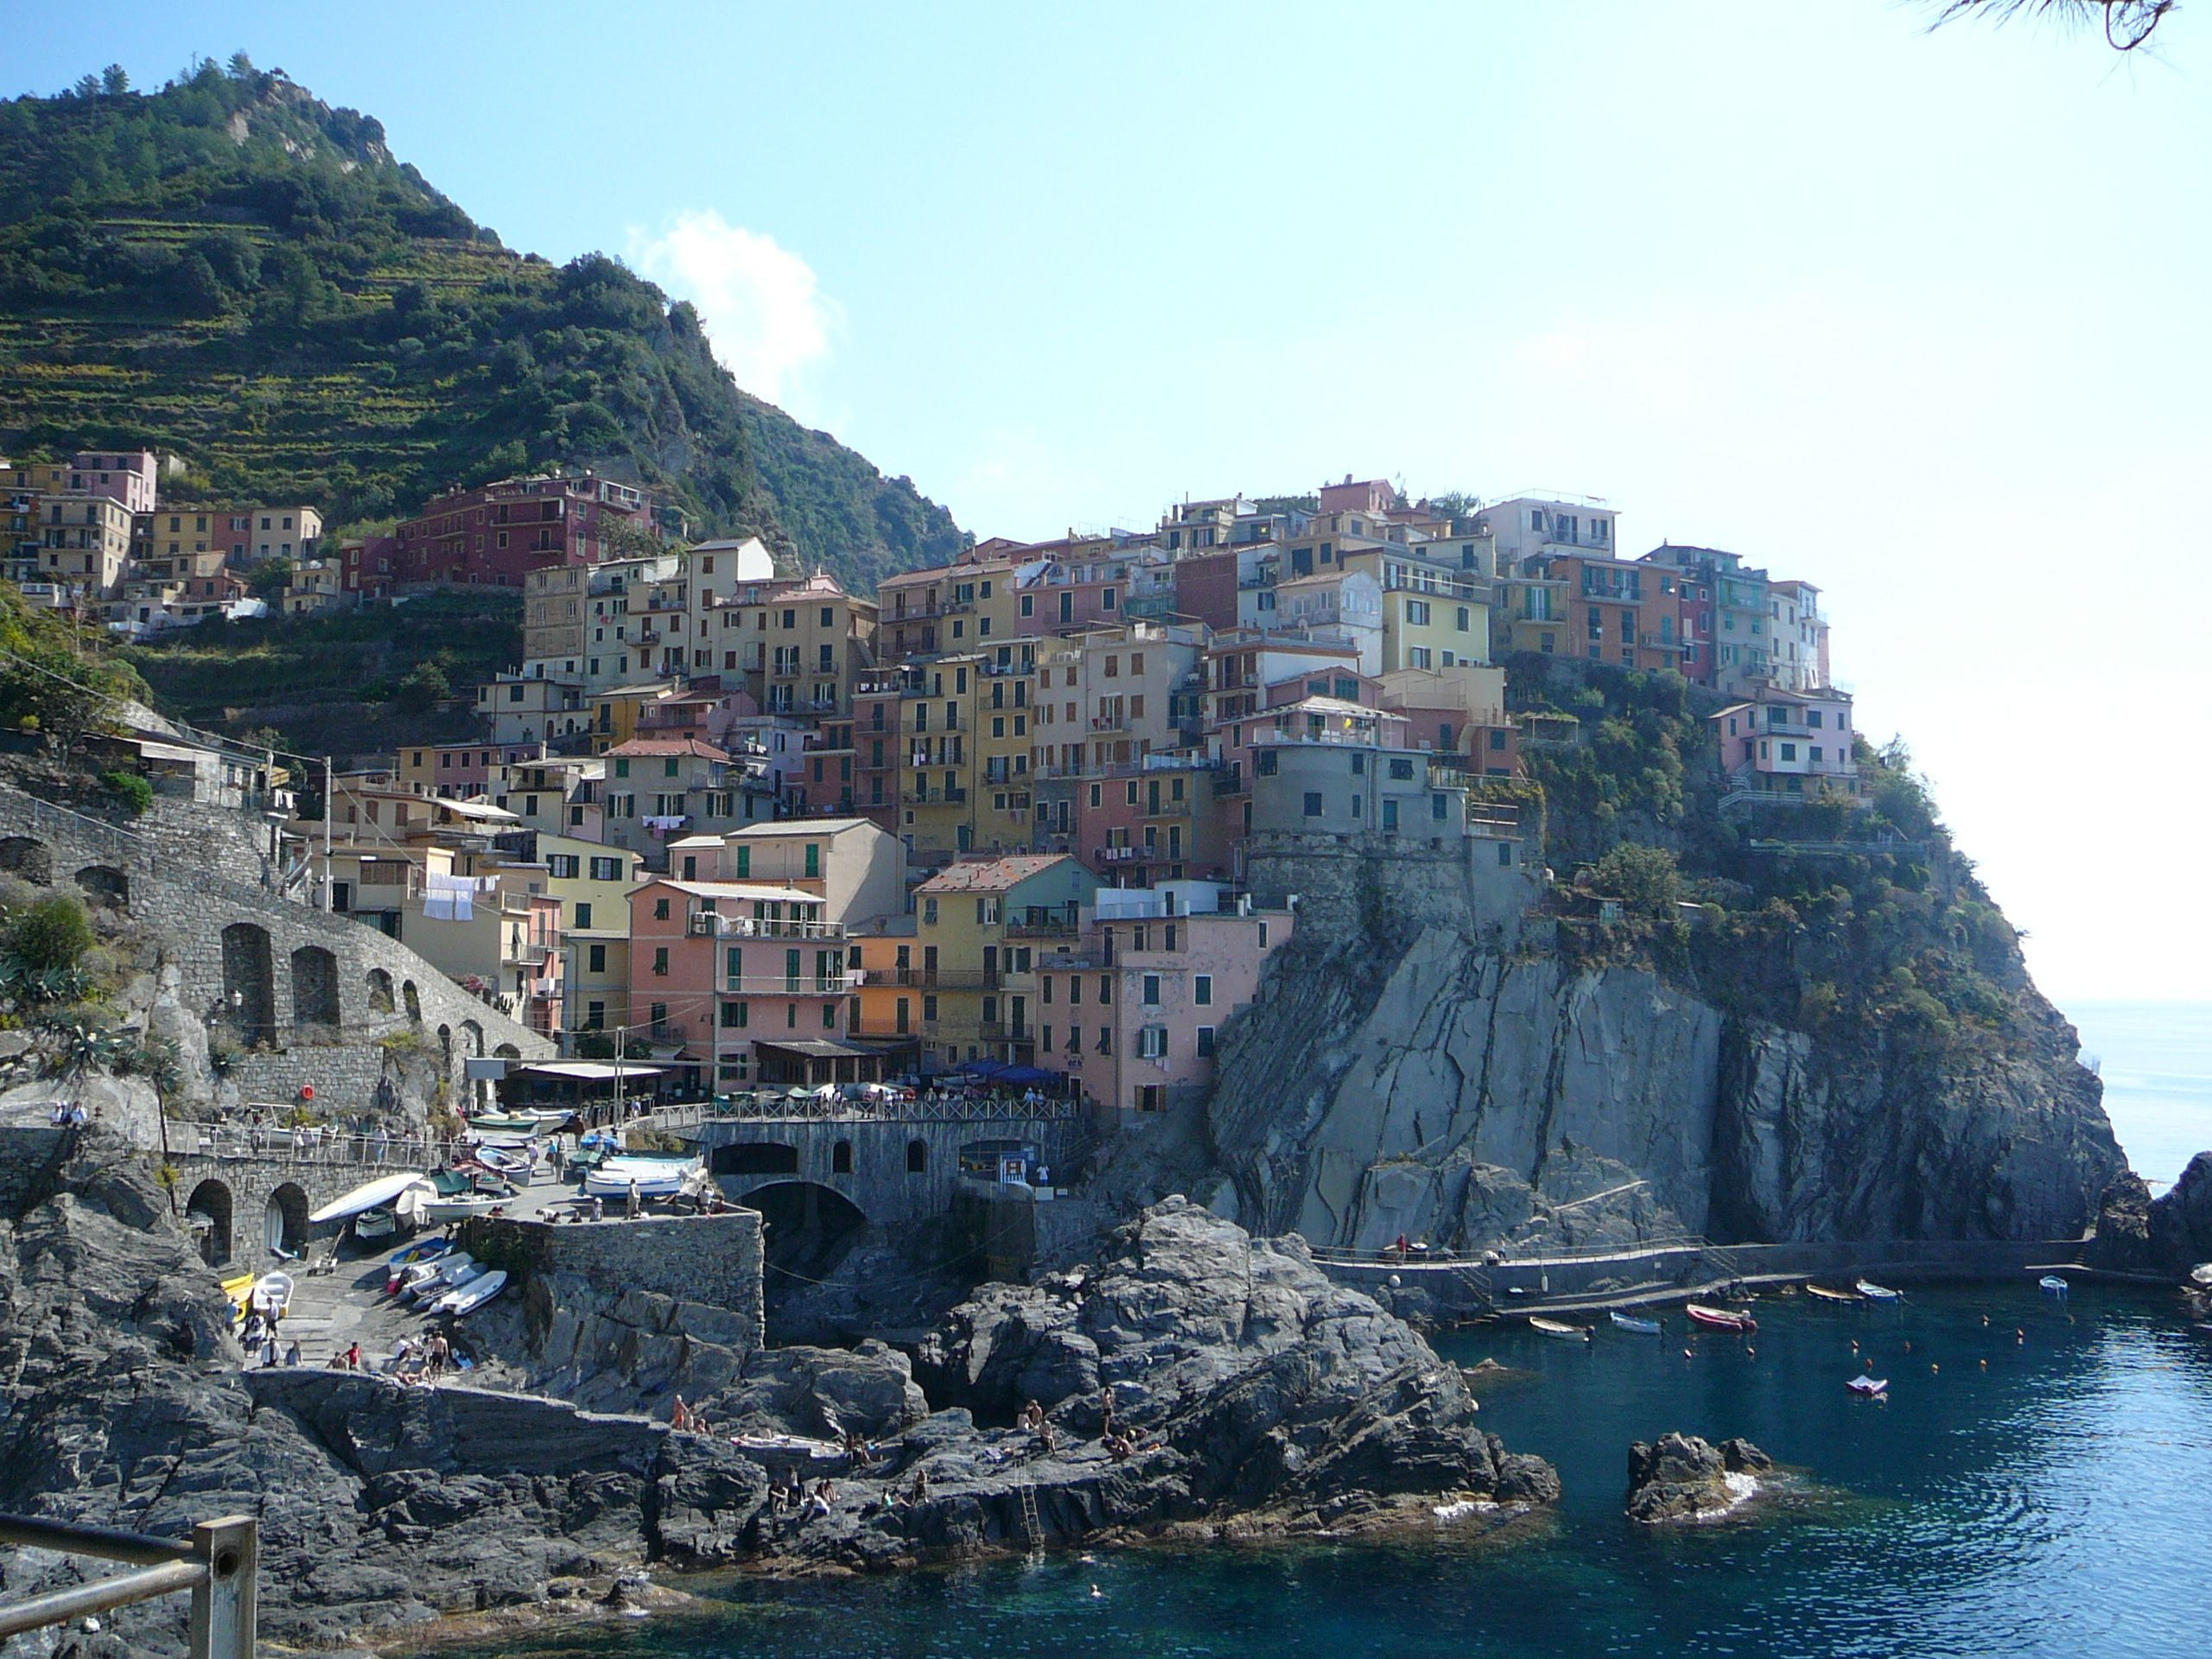 In the Cinque Terre on the Ligurian coast in Italy